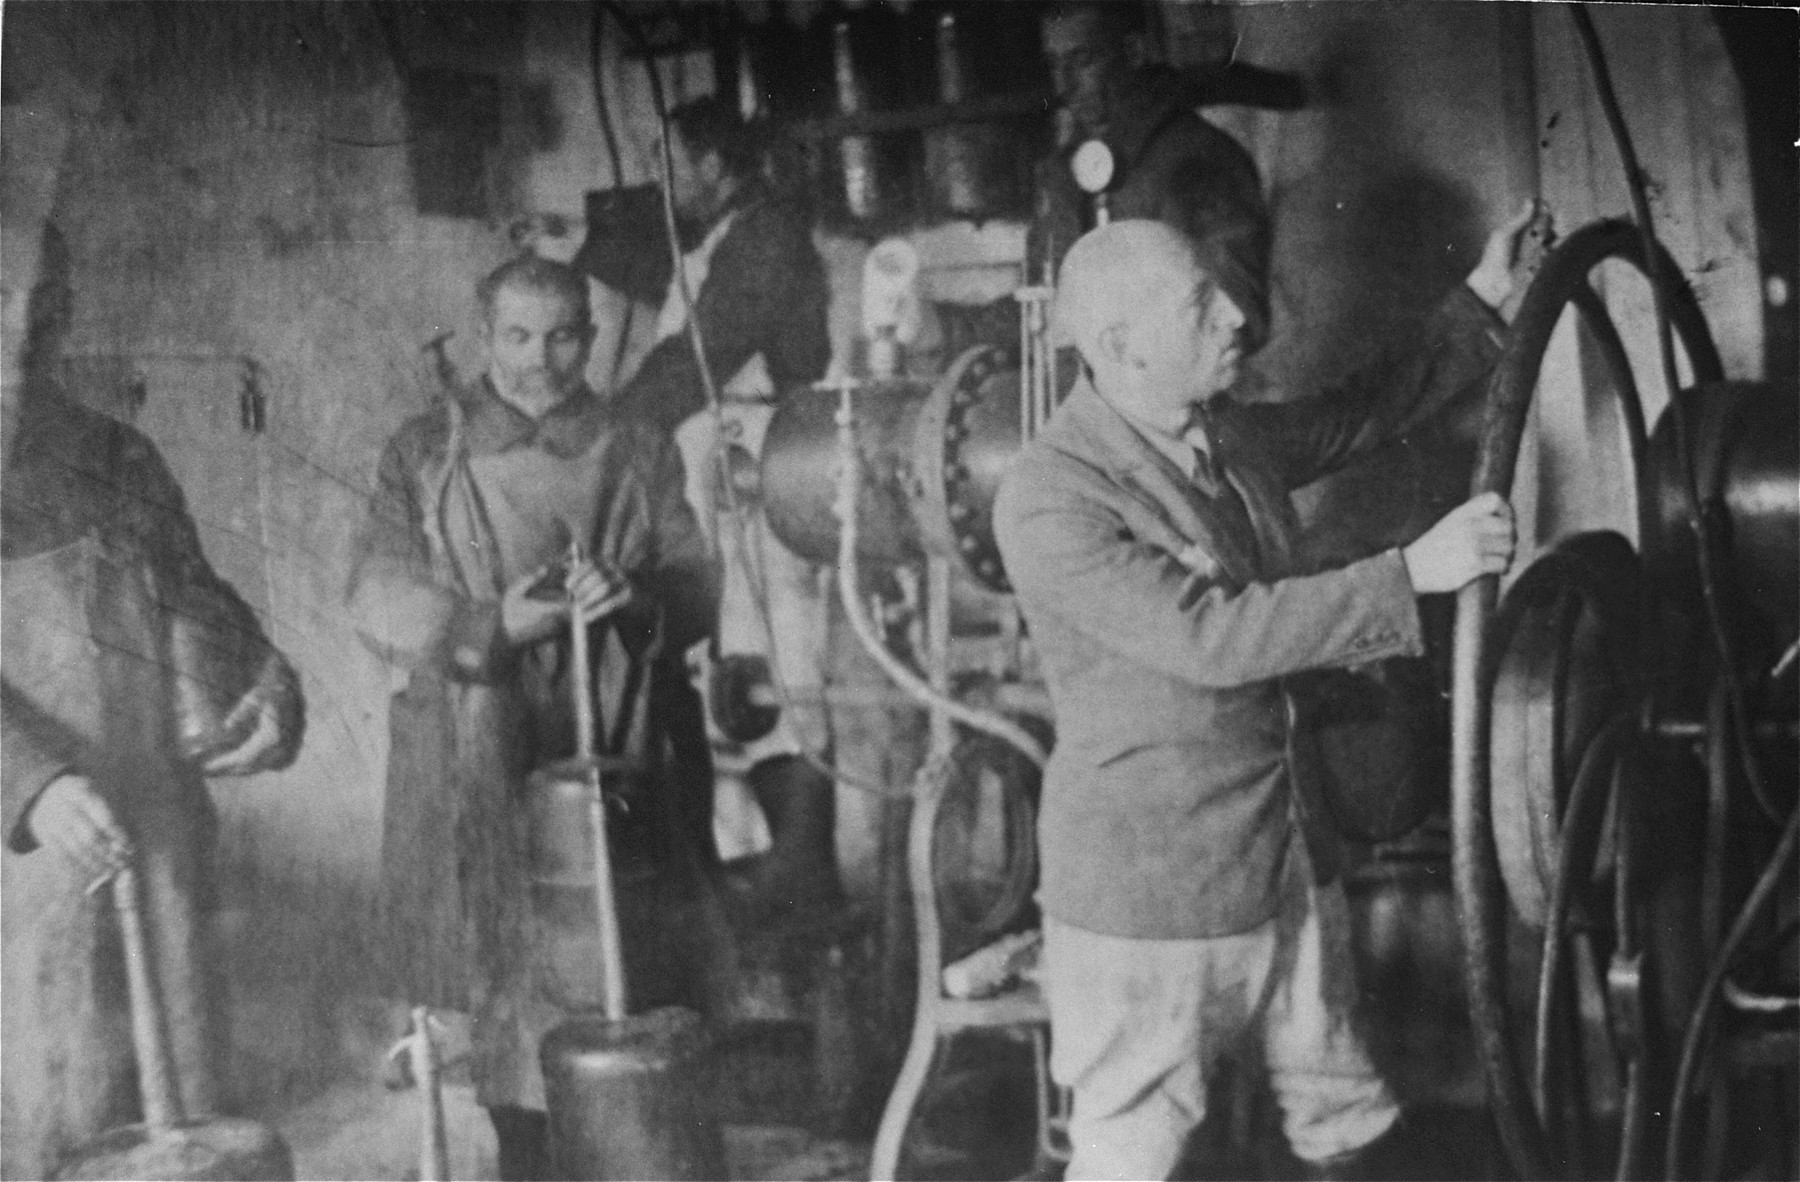 Jewish men at work in a tanning factory in the Glubokoye ghetto.